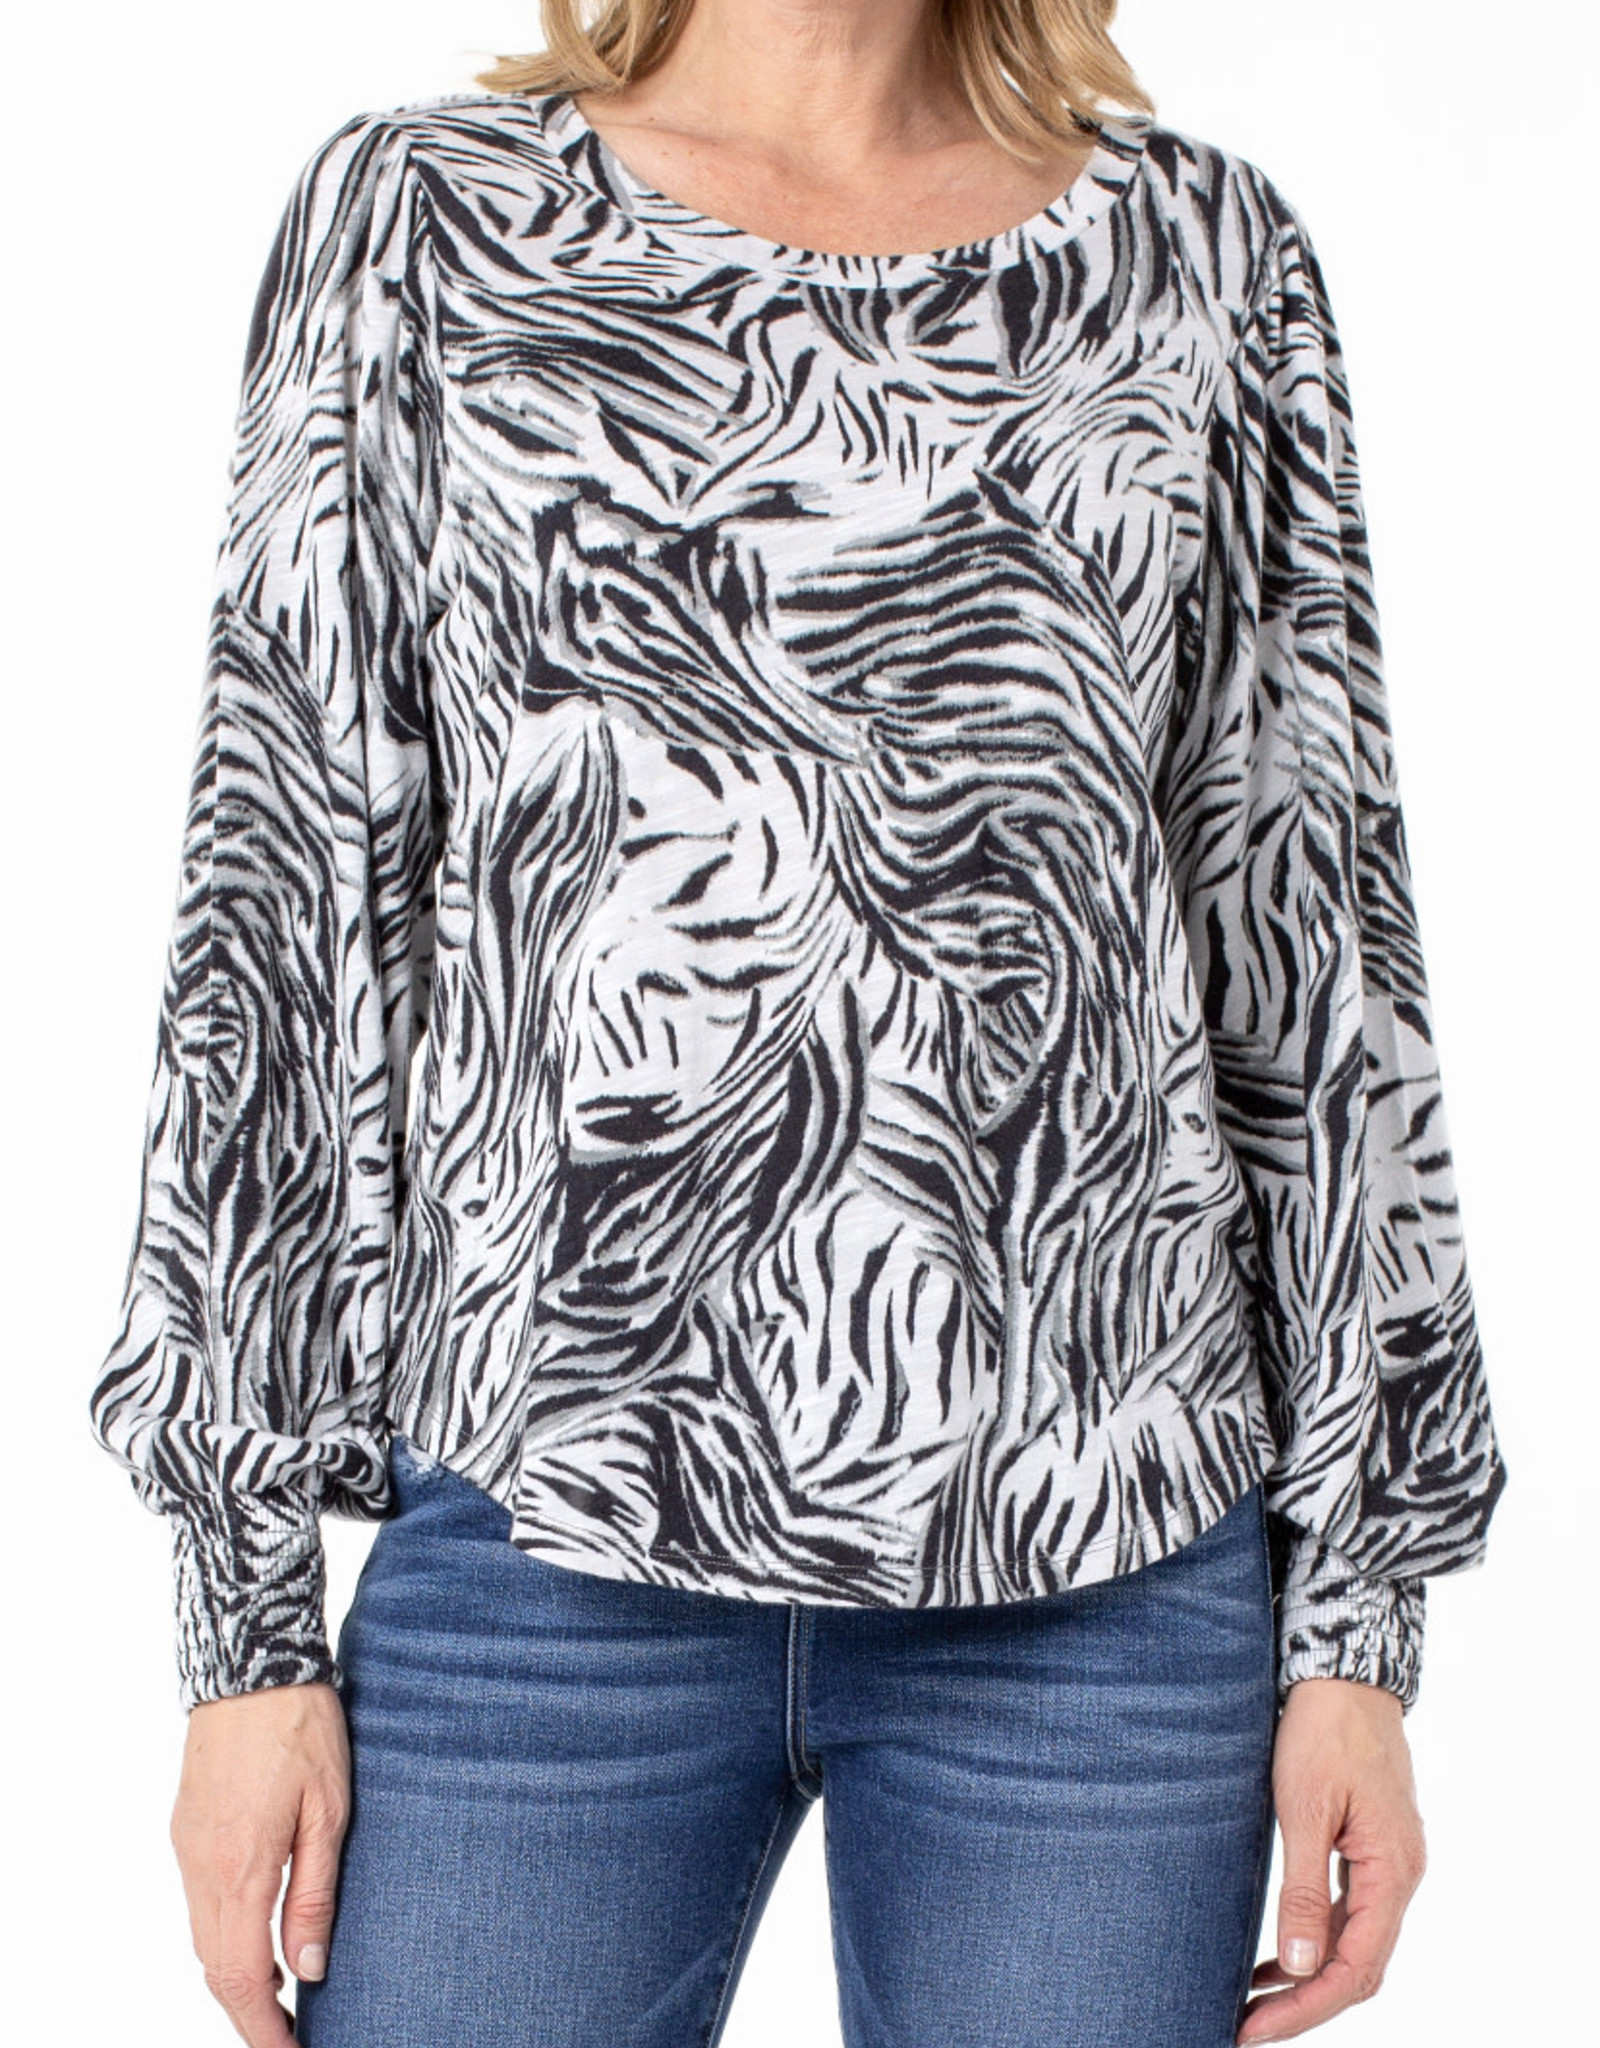 Liverpool Smocked Cuff knit top